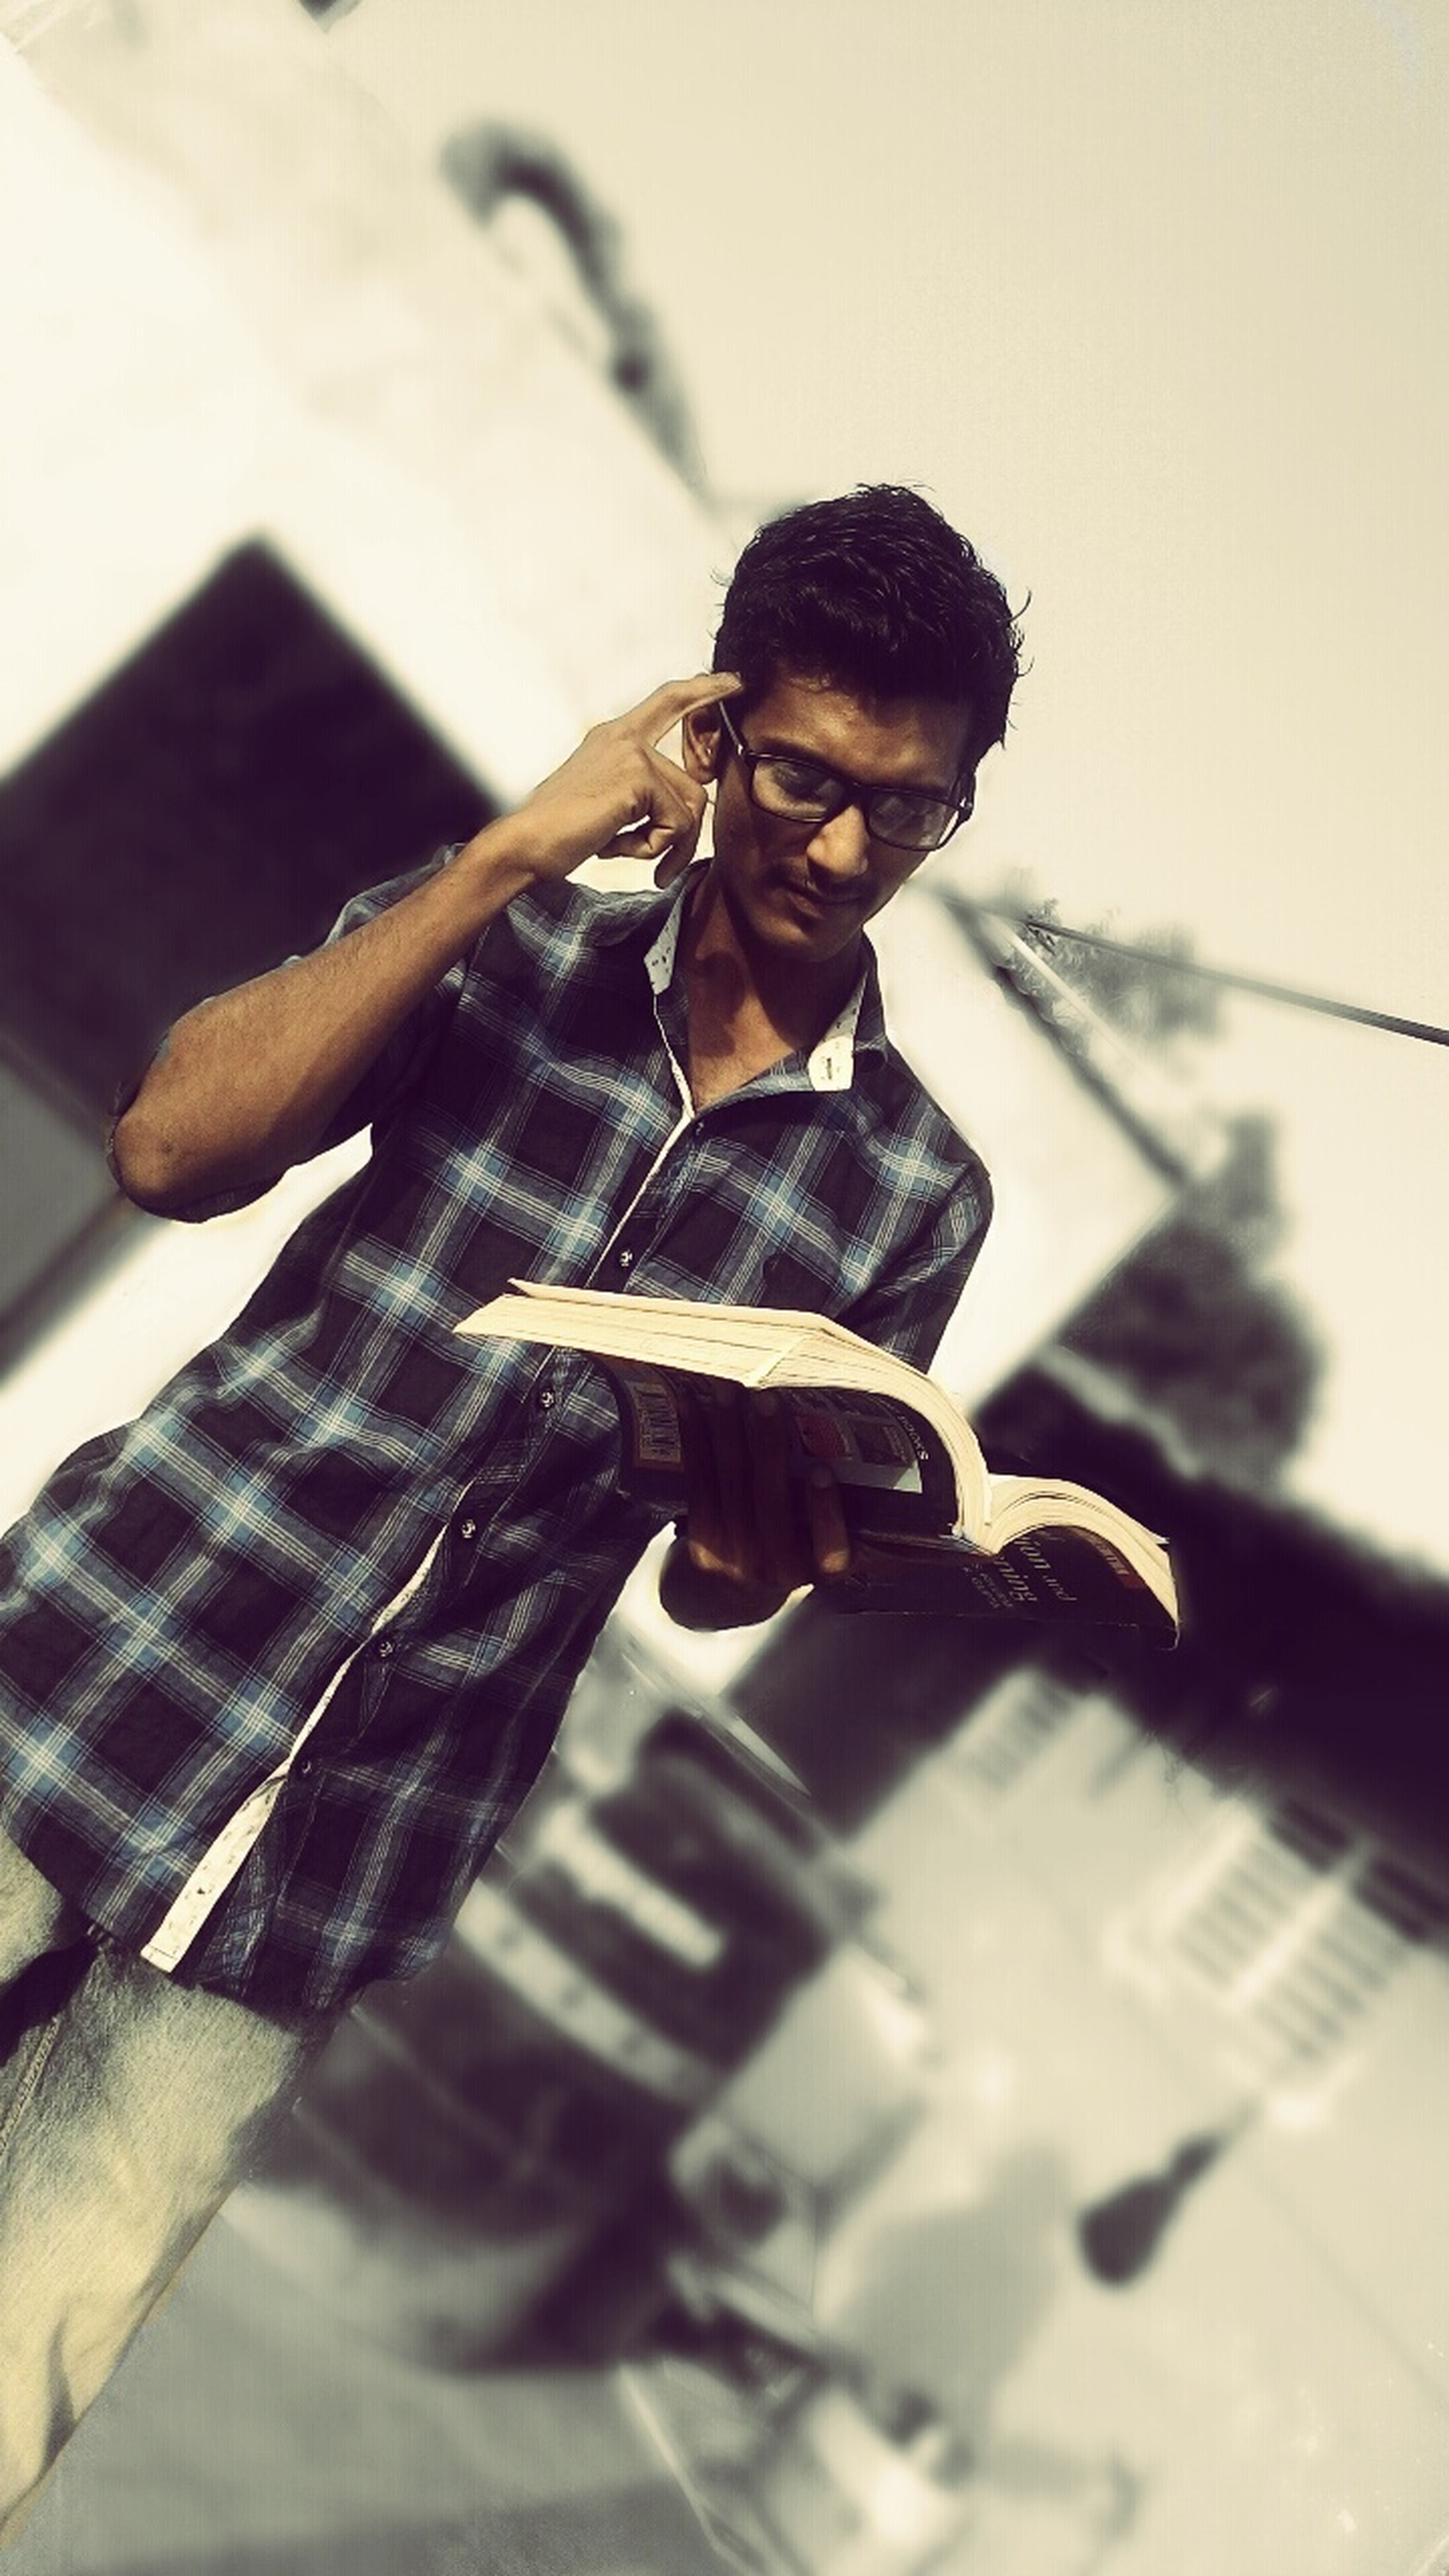 IN eXamE daYs ....eye on books only